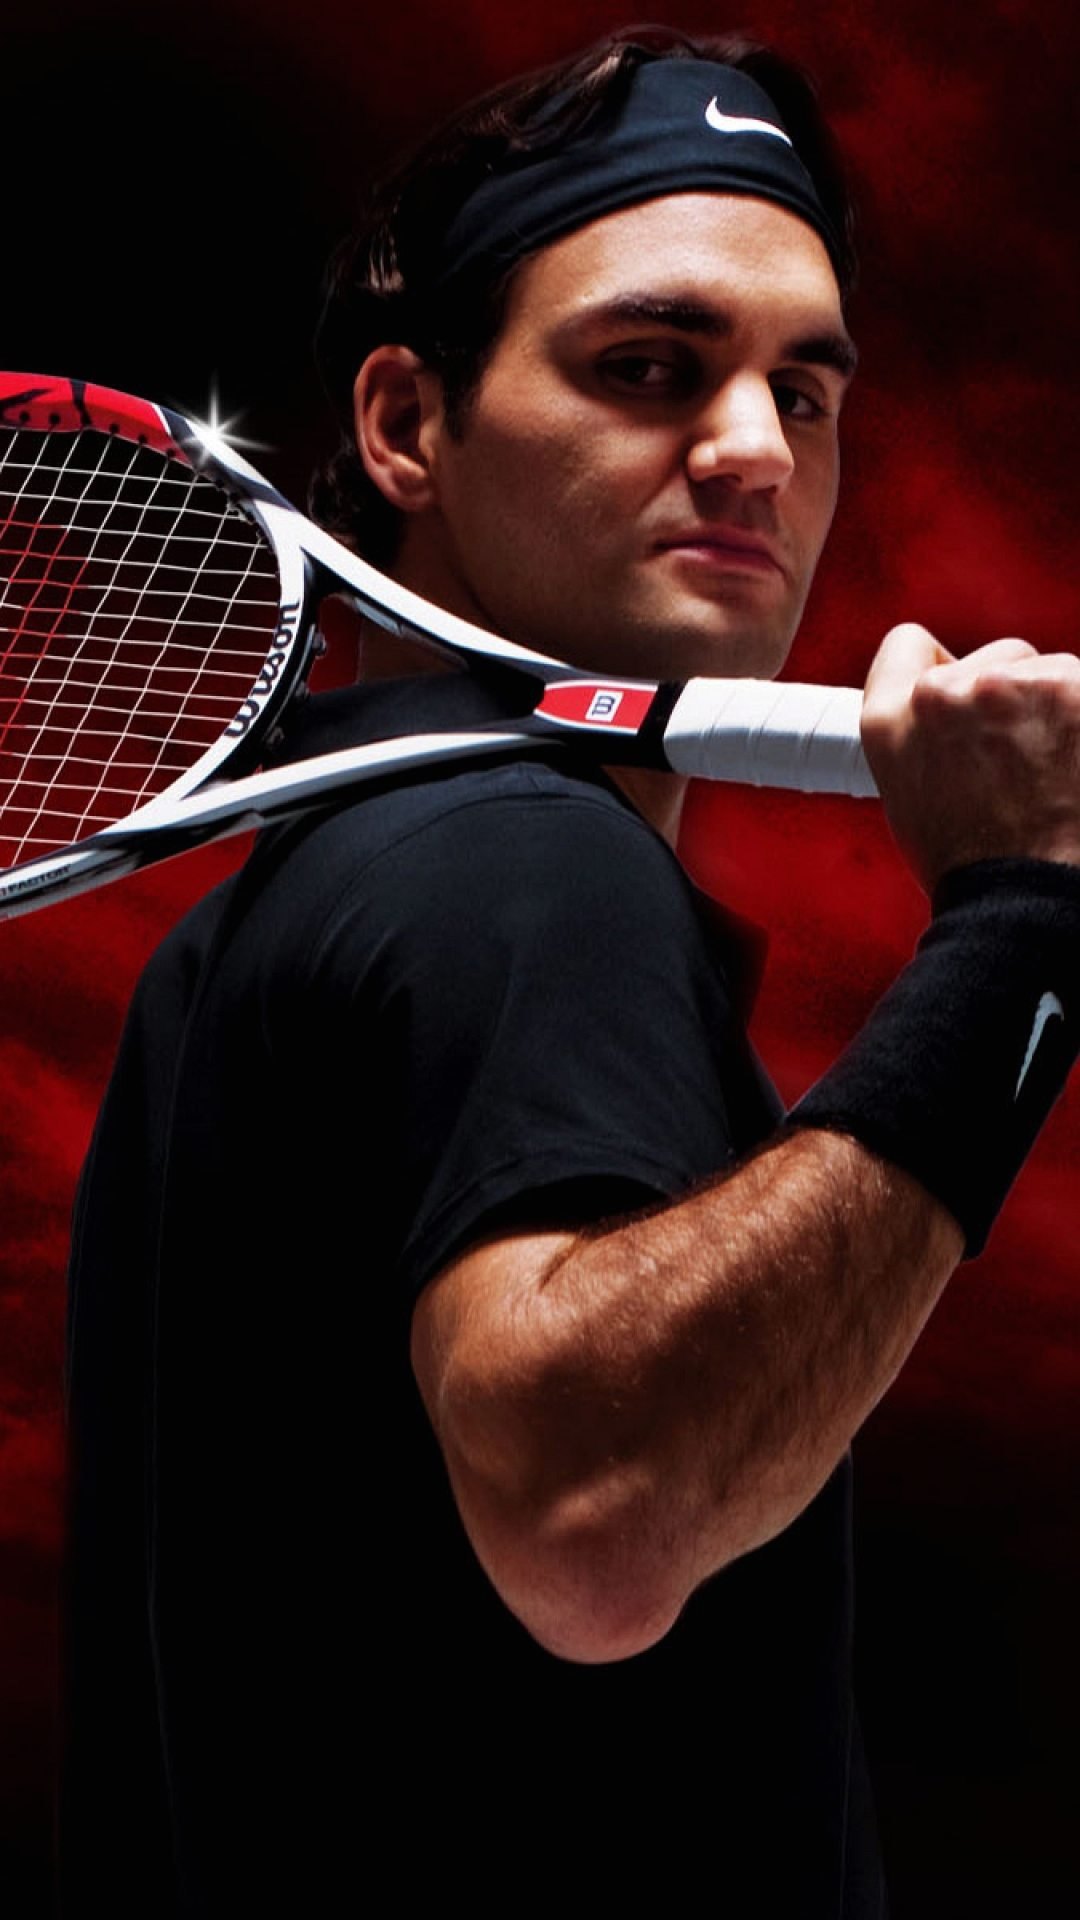 Roger Federer Best Htc One Wallpapers Free And Easy To Download